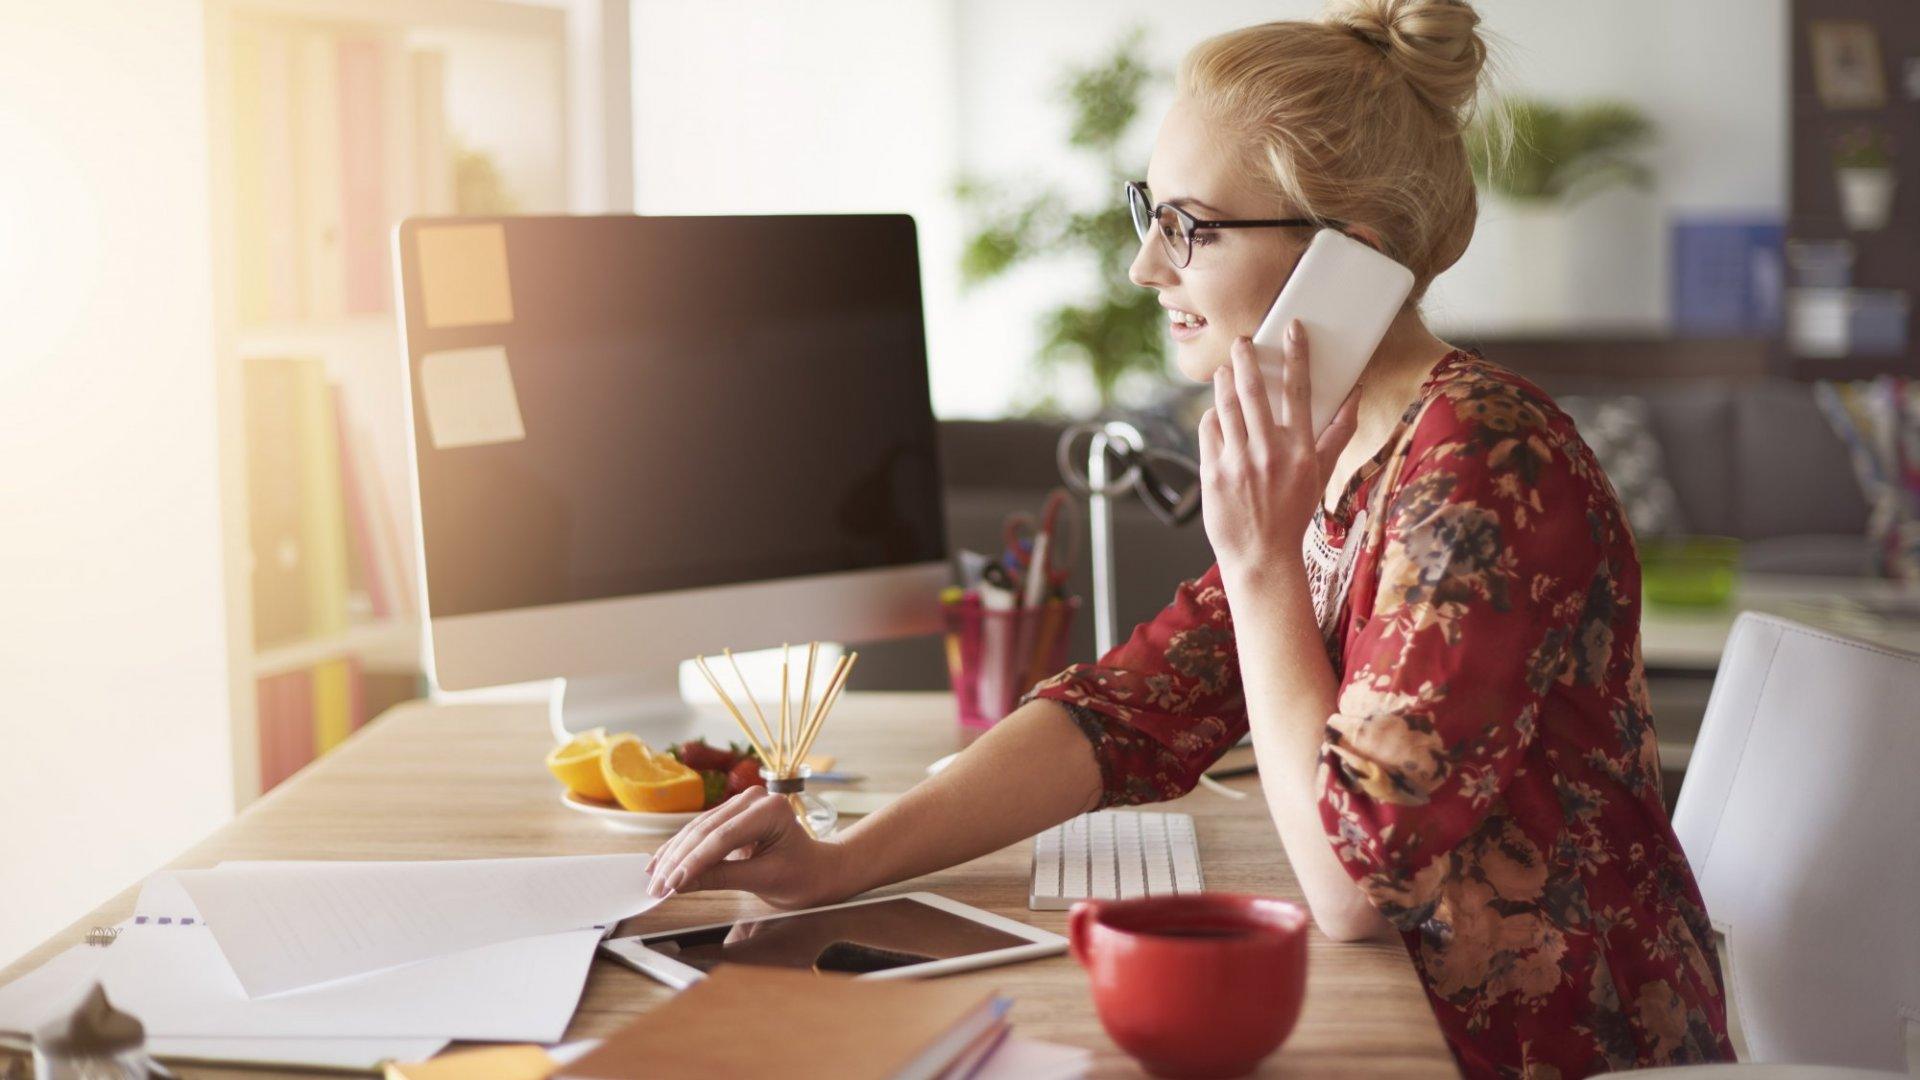 This Survey of 21,000 Freelancers From 170 Countries Shows What Having No Boss Is Like